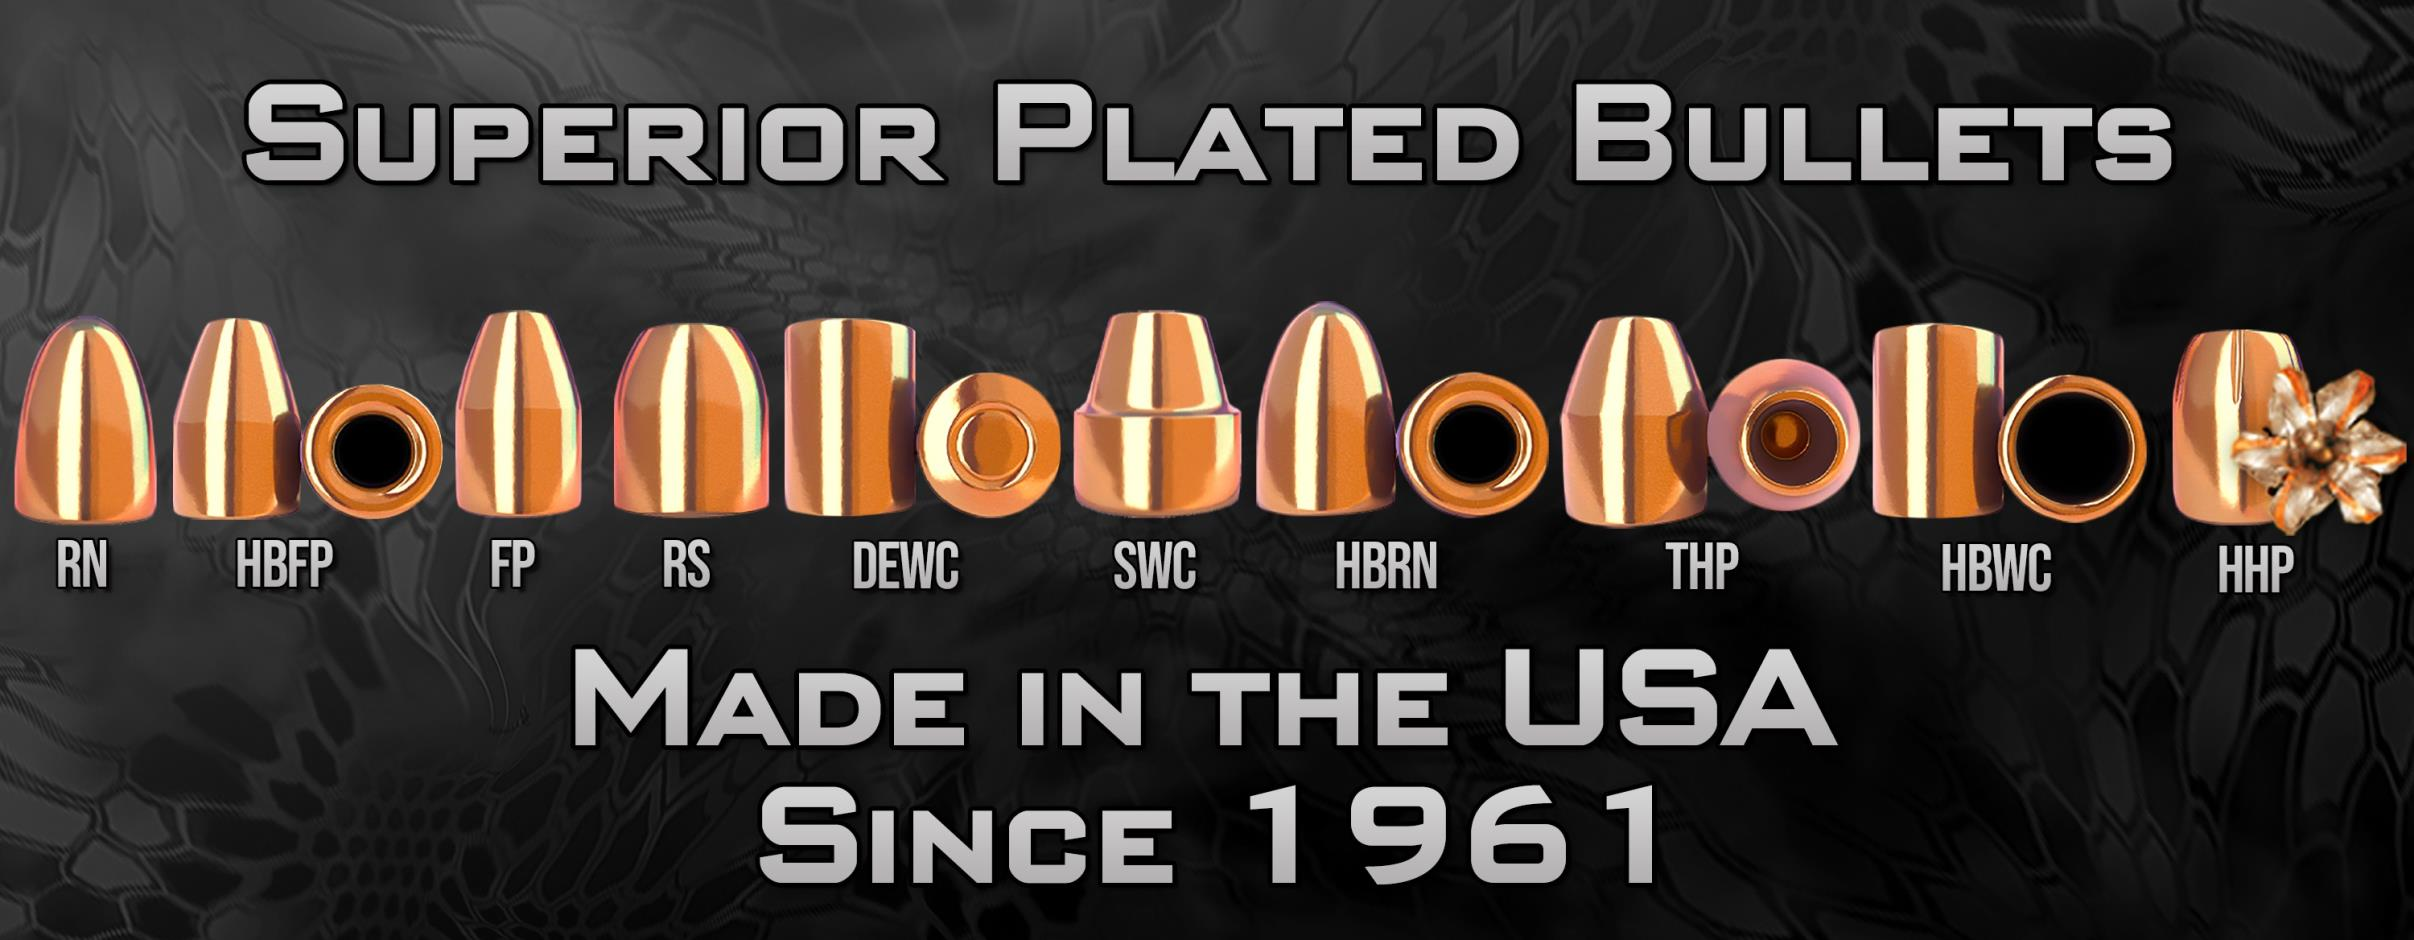 Berry's Manufacturing - Superior Plated Bullets, Reloading